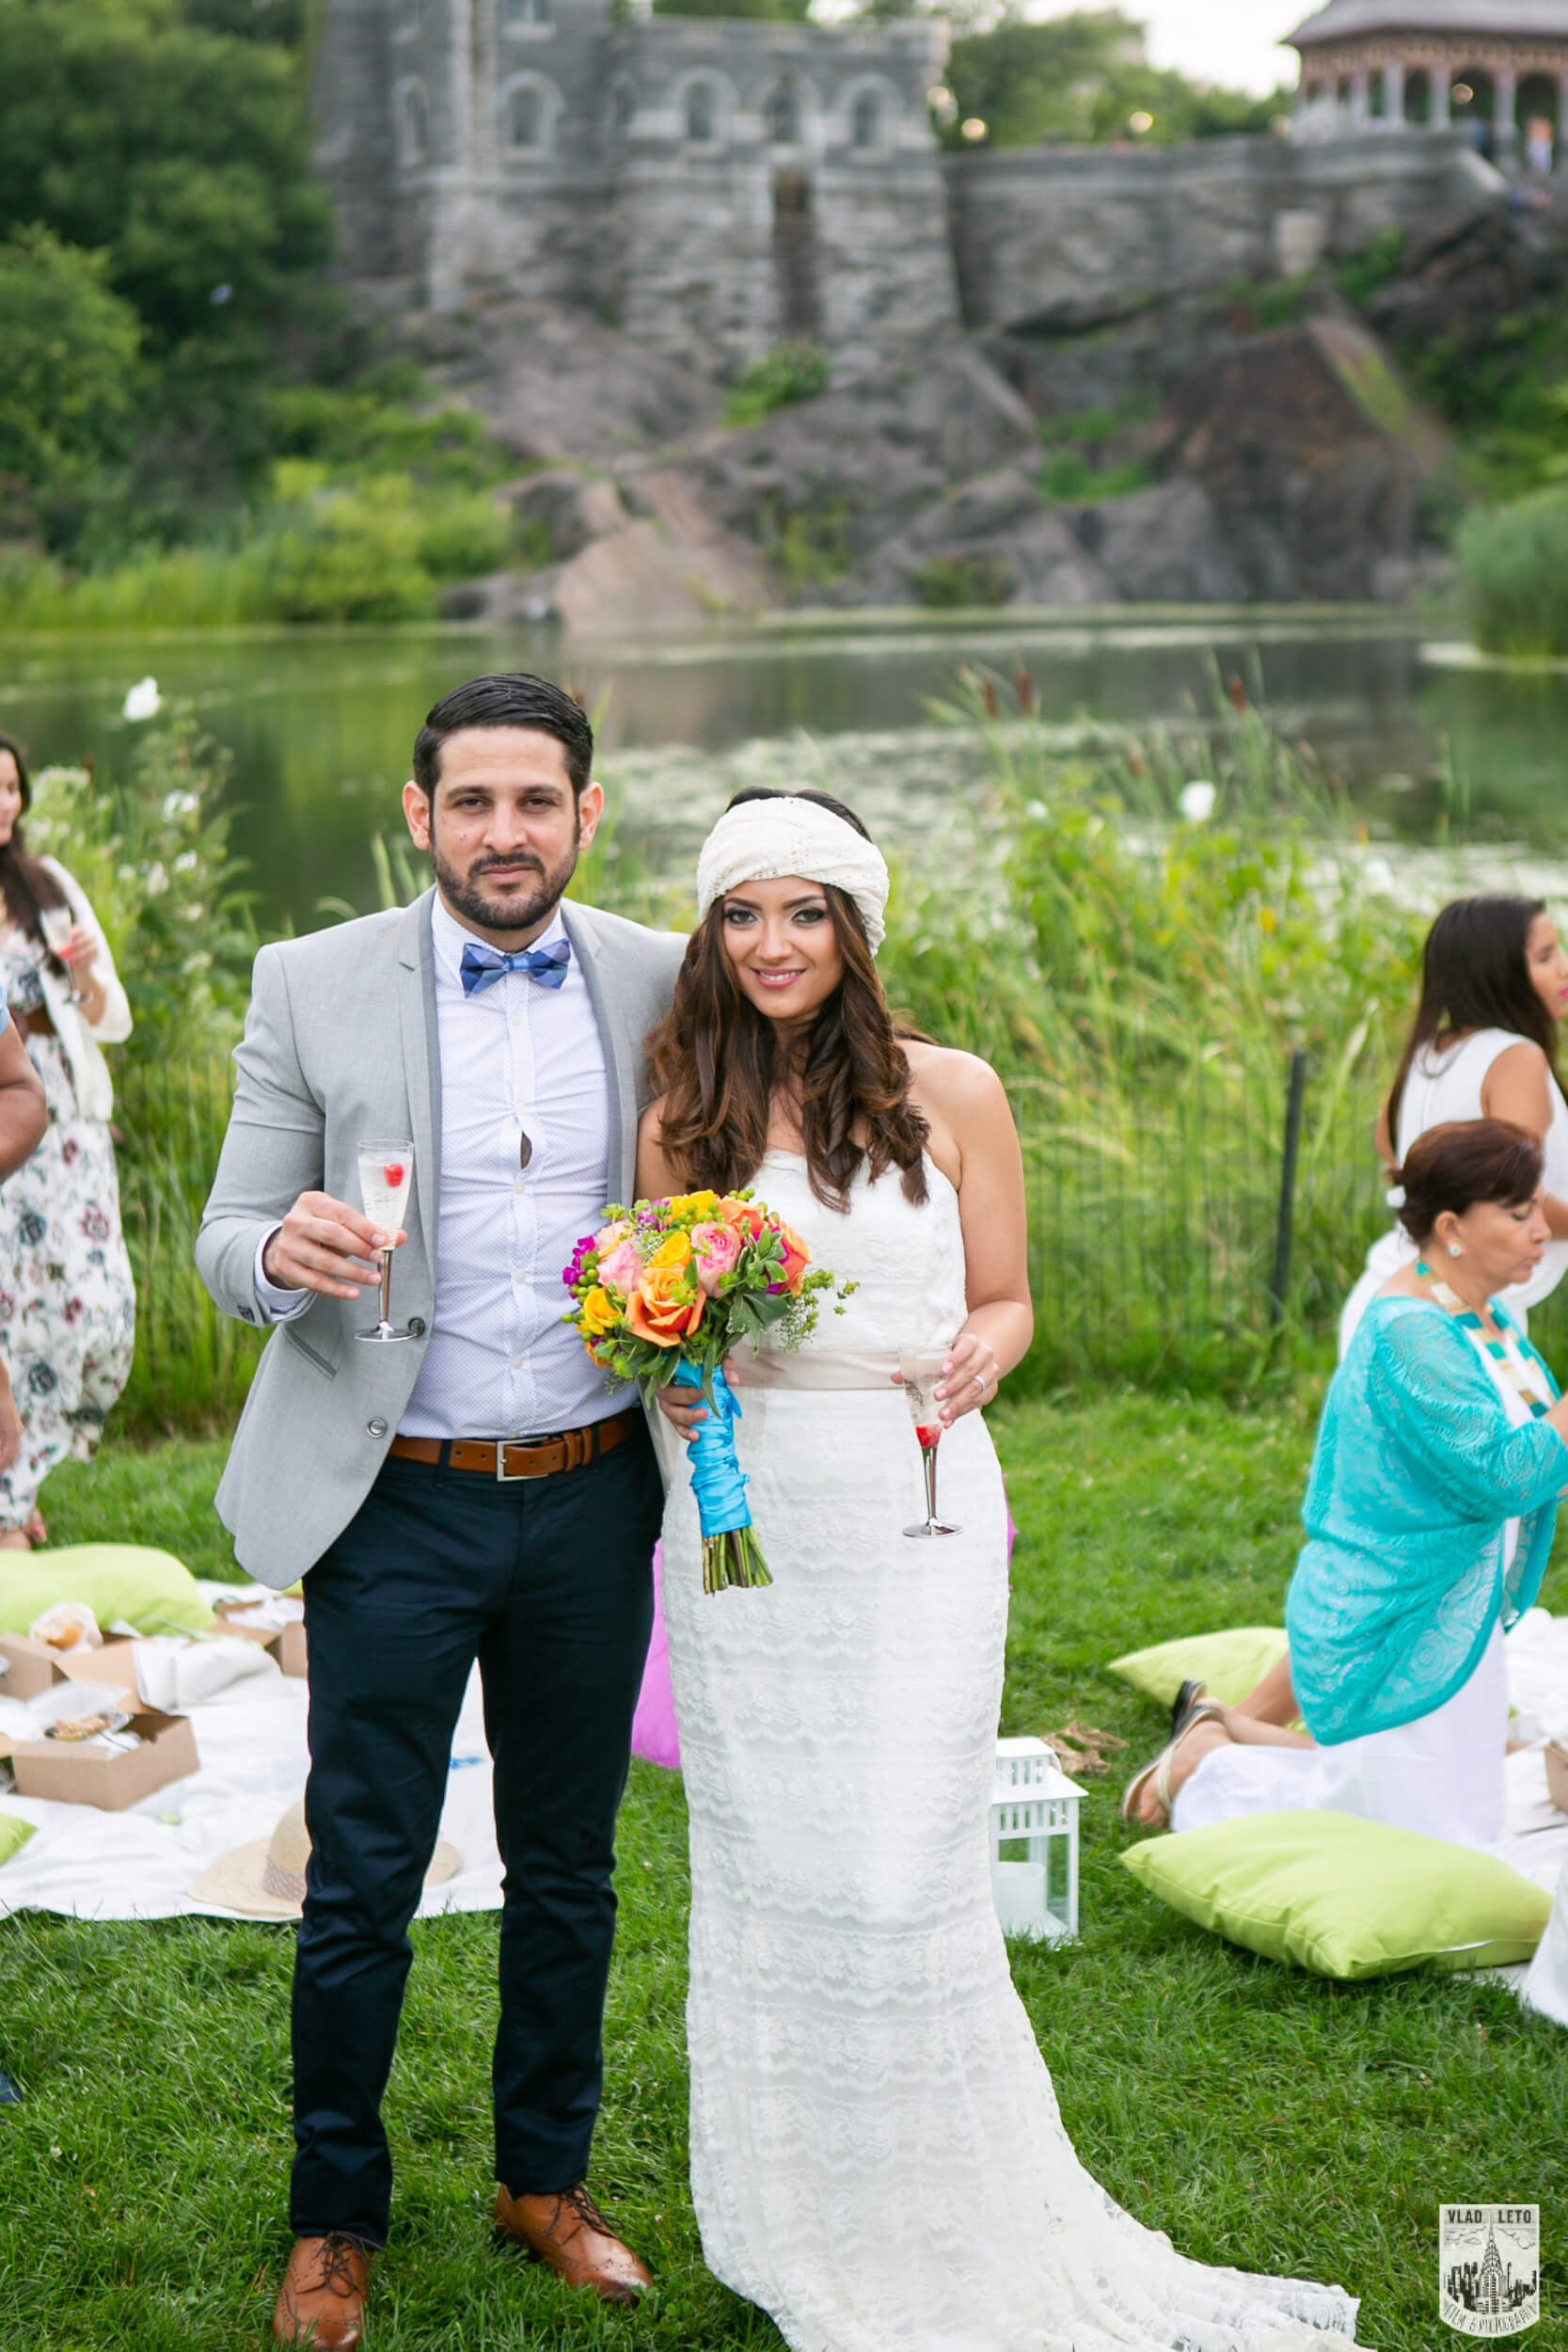 Wedding in Central Park at the Belvedere Castle